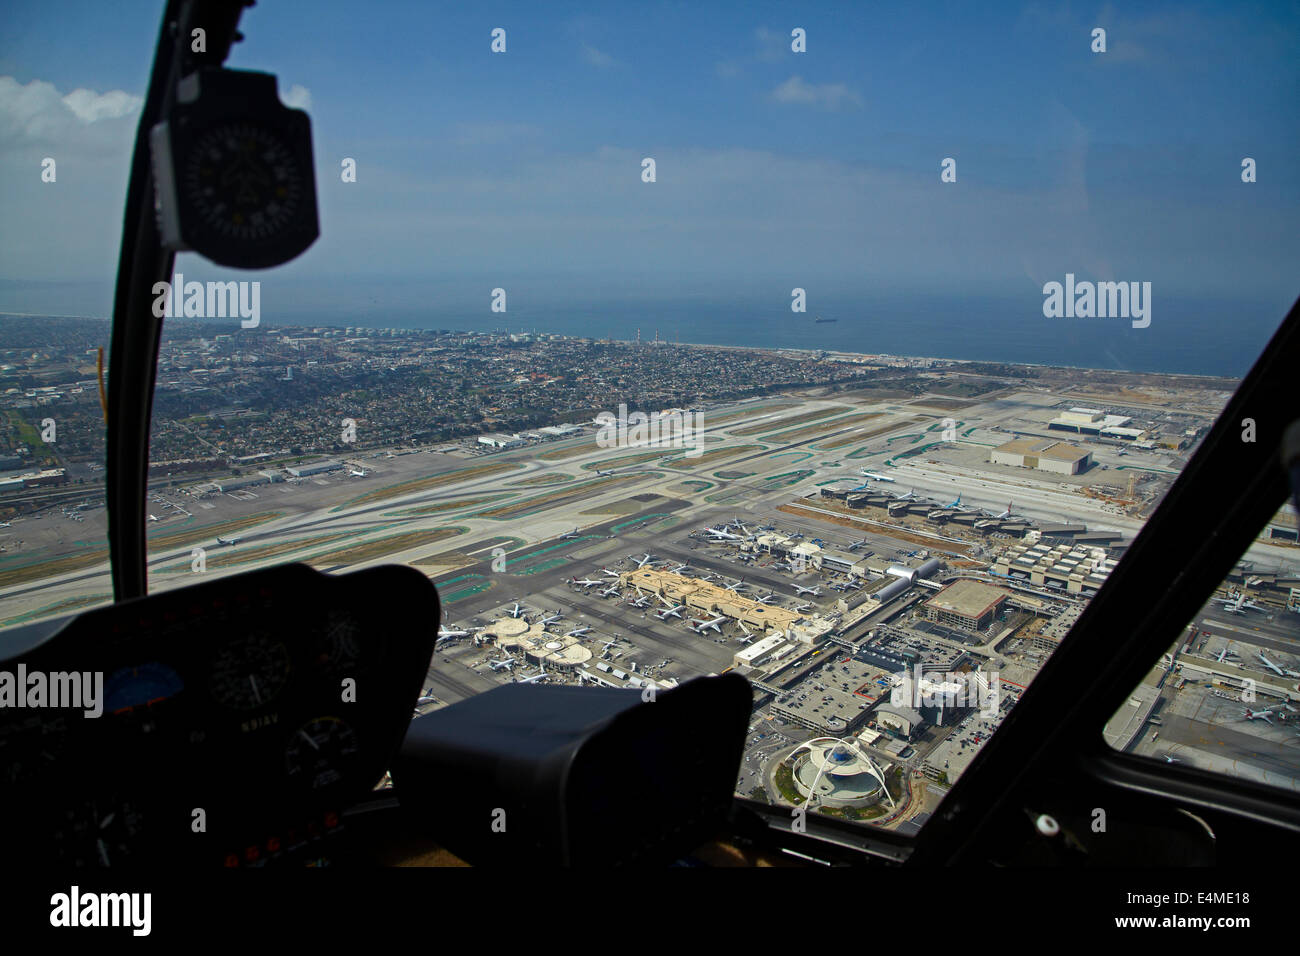 Helicopter over Los Angeles International Airport (LAX), Los Angeles, California, USA - aerial - Stock Image